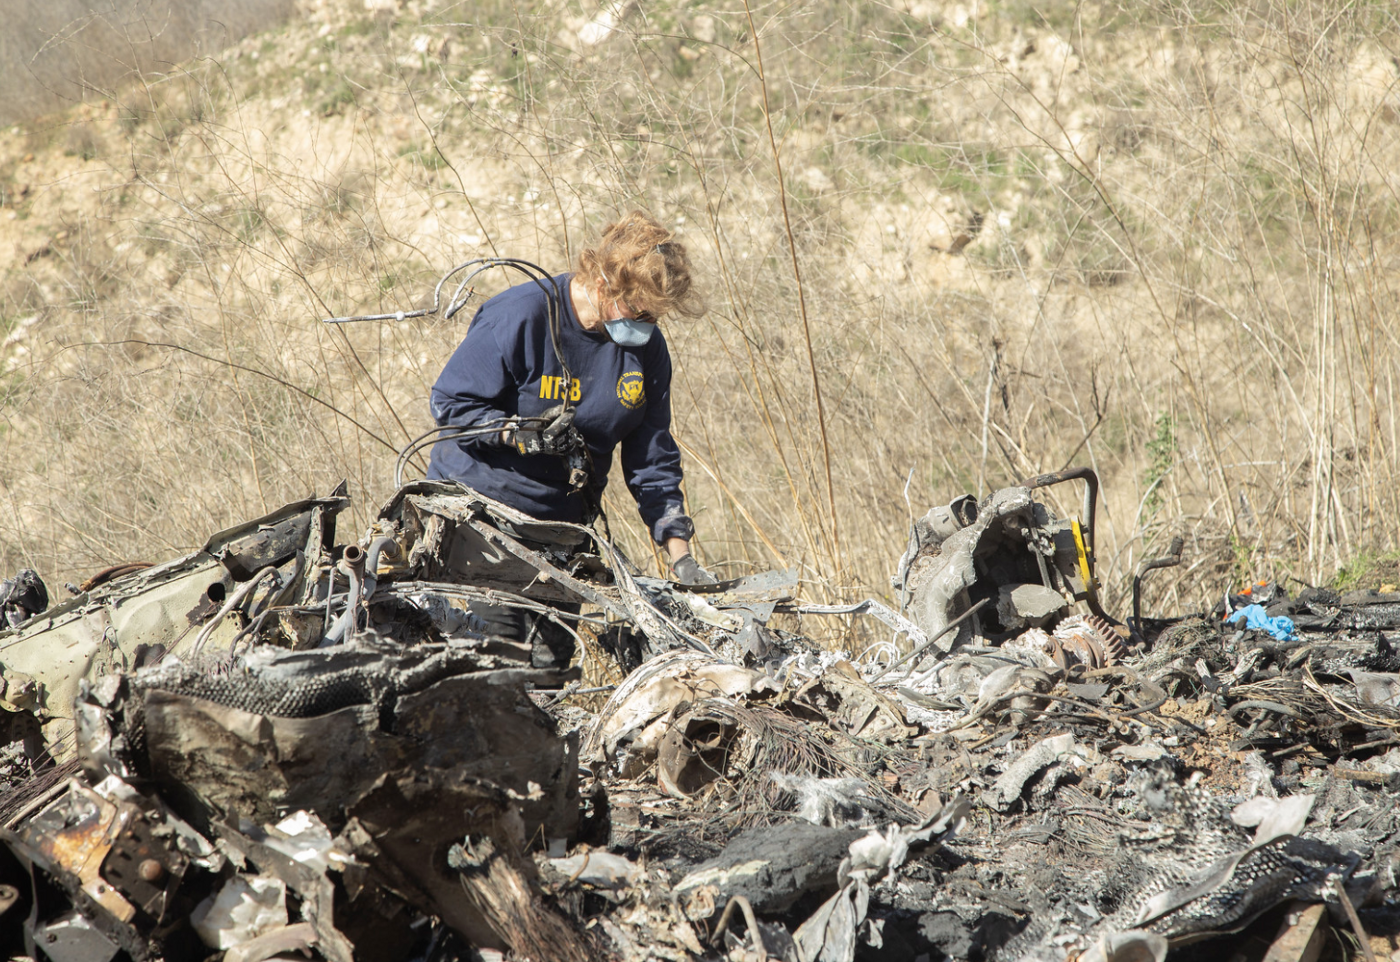 NTSB investigator Carol Hogan examines the wreckage of the helicopter involved in the crash that killed Kobe Bryant